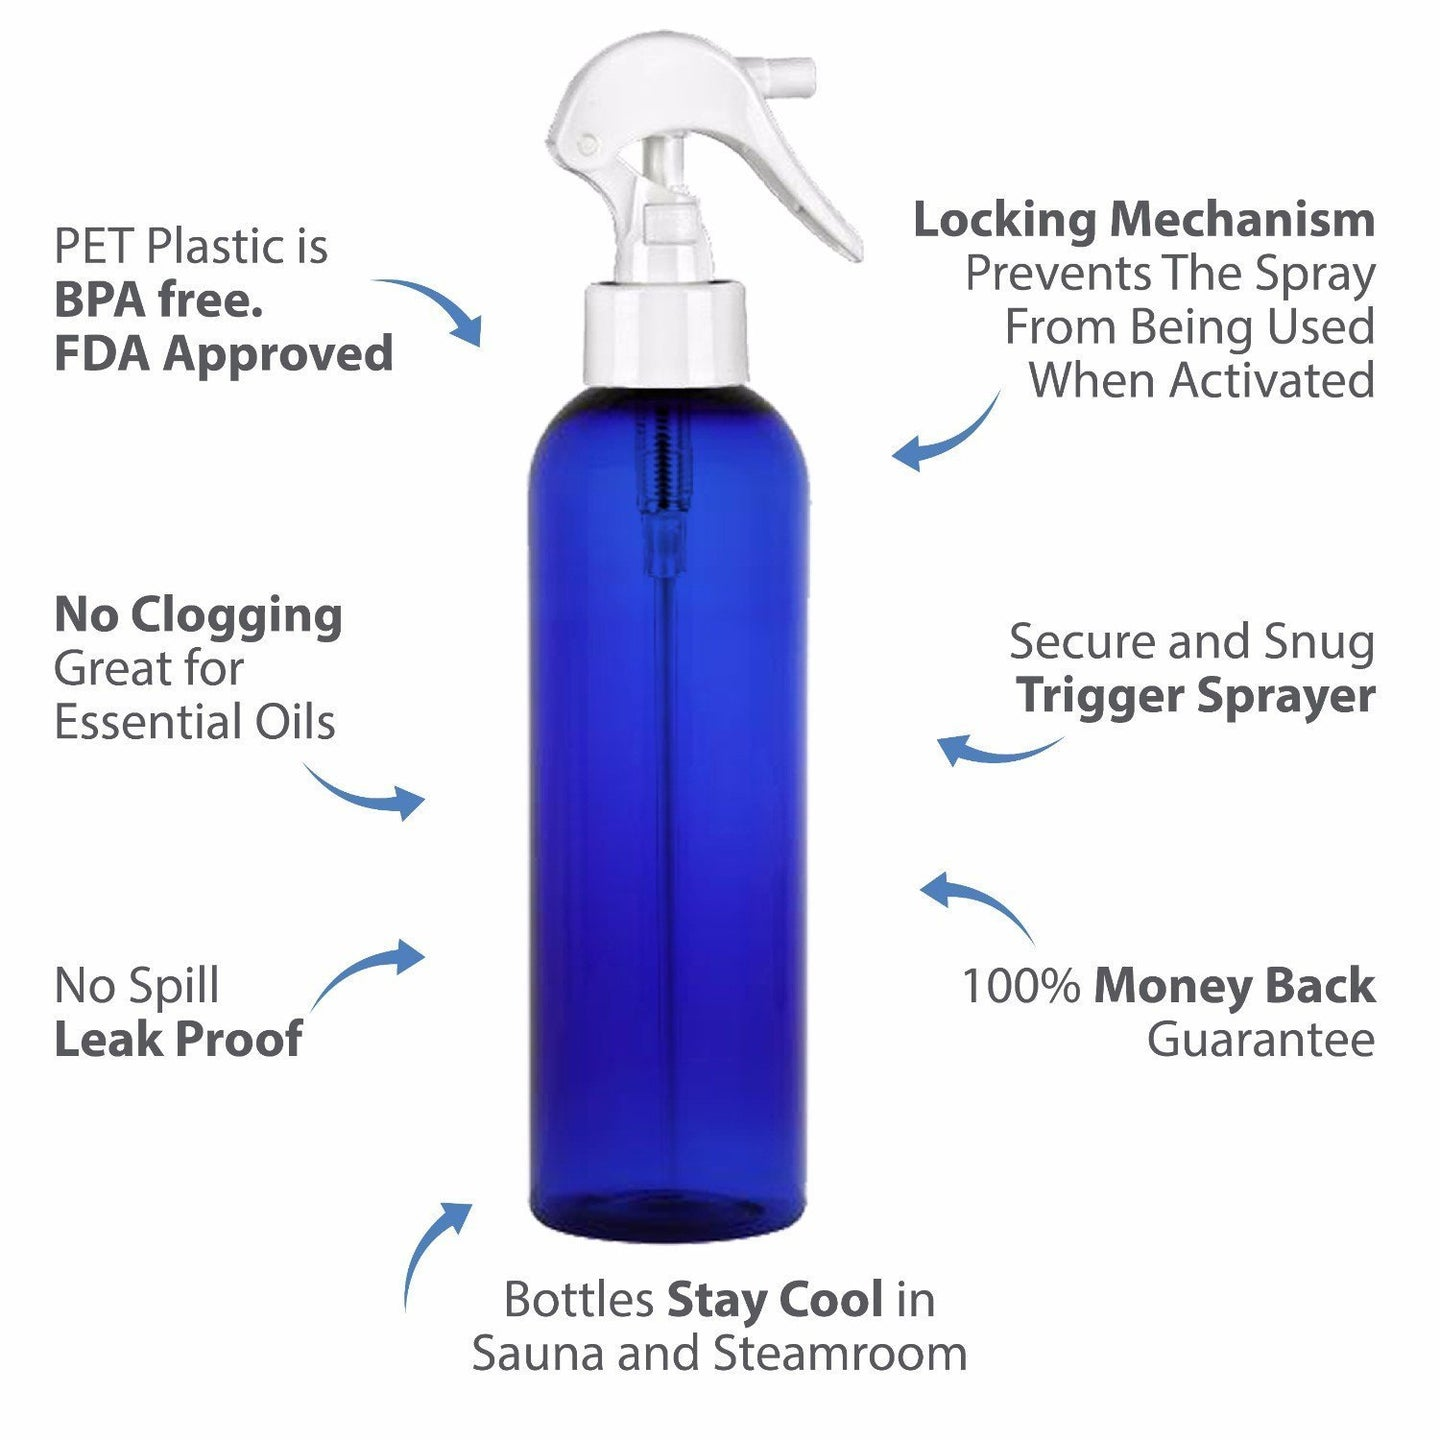 MoYo Natural Labs 8 oz Spray Bottles, Trigger Sprayer Empty Travel Containers, BPA Free for Essential Oils and Liquids/Cosmetics (Pack of 50, Blue)